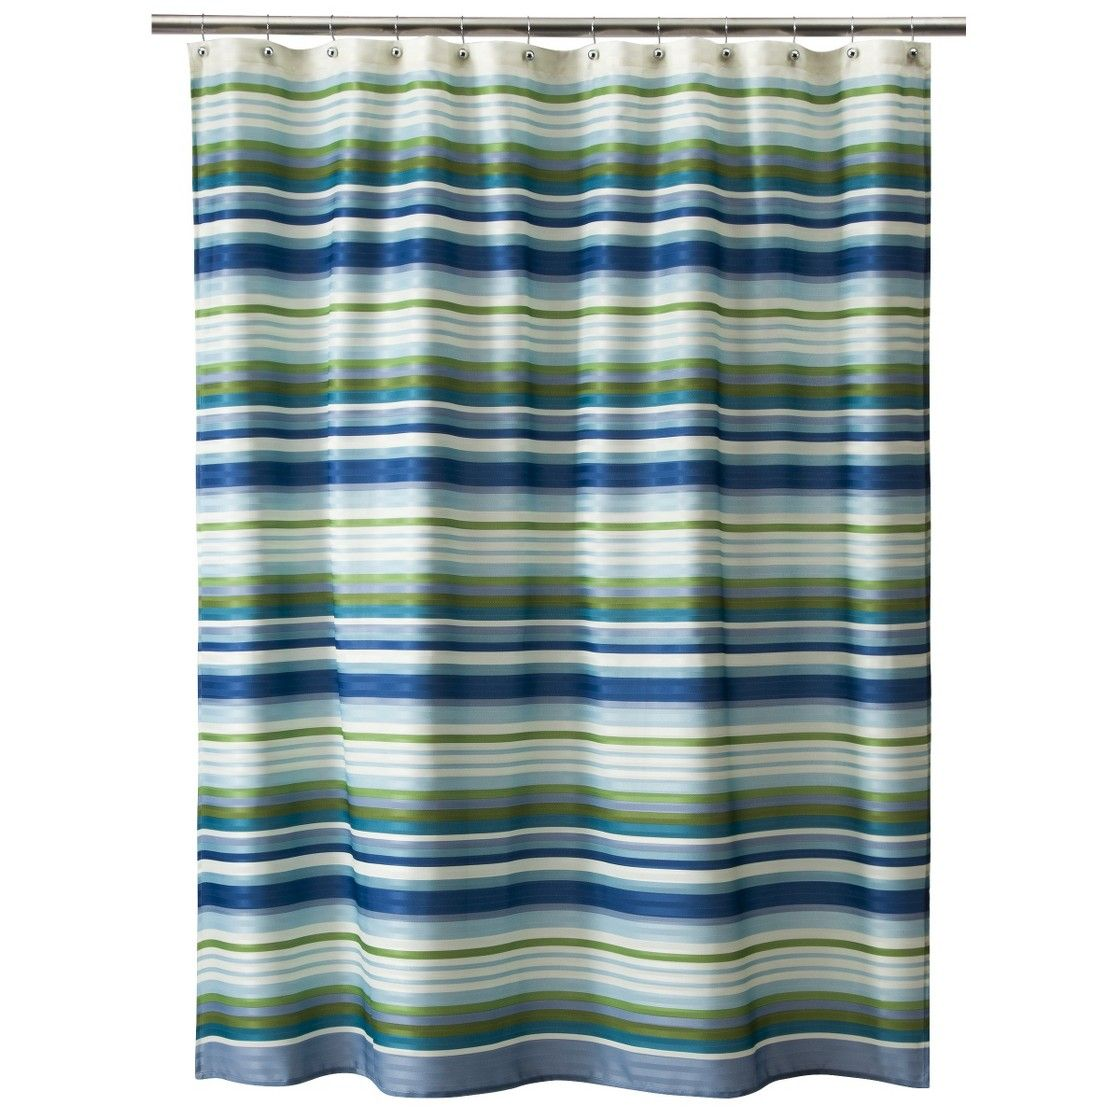 Blue and green striped shower curtain - Threshold Herringbone Stripe Shower Curtain Let U0027s Re Decorate